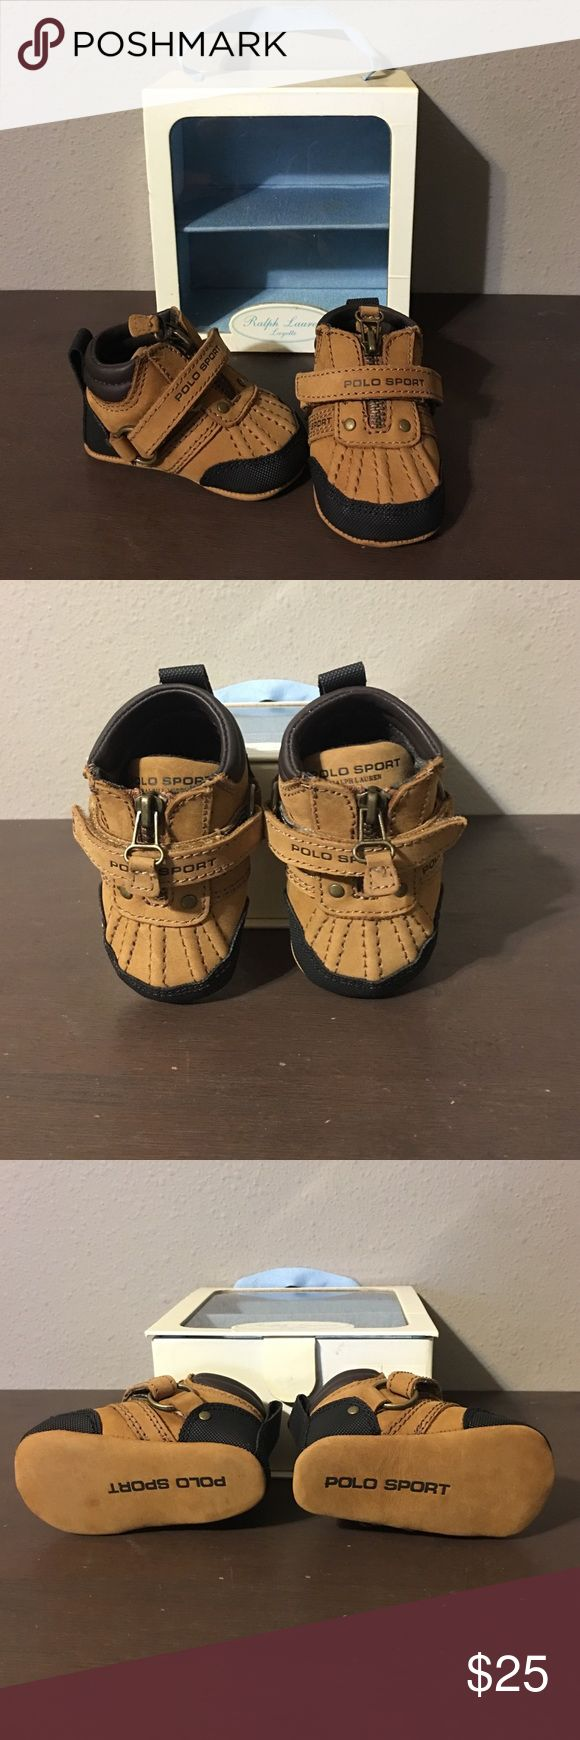 Polo Sport Ralph Lauren Baby Shoes Oh my goodness, I cannot get over how adorable these are! Precious Polo Sport leather shoes. Brand new in the little blue lined layette box. Size 1, 6 weeks-3 months Polo by Ralph Lauren Shoes Baby & Walker